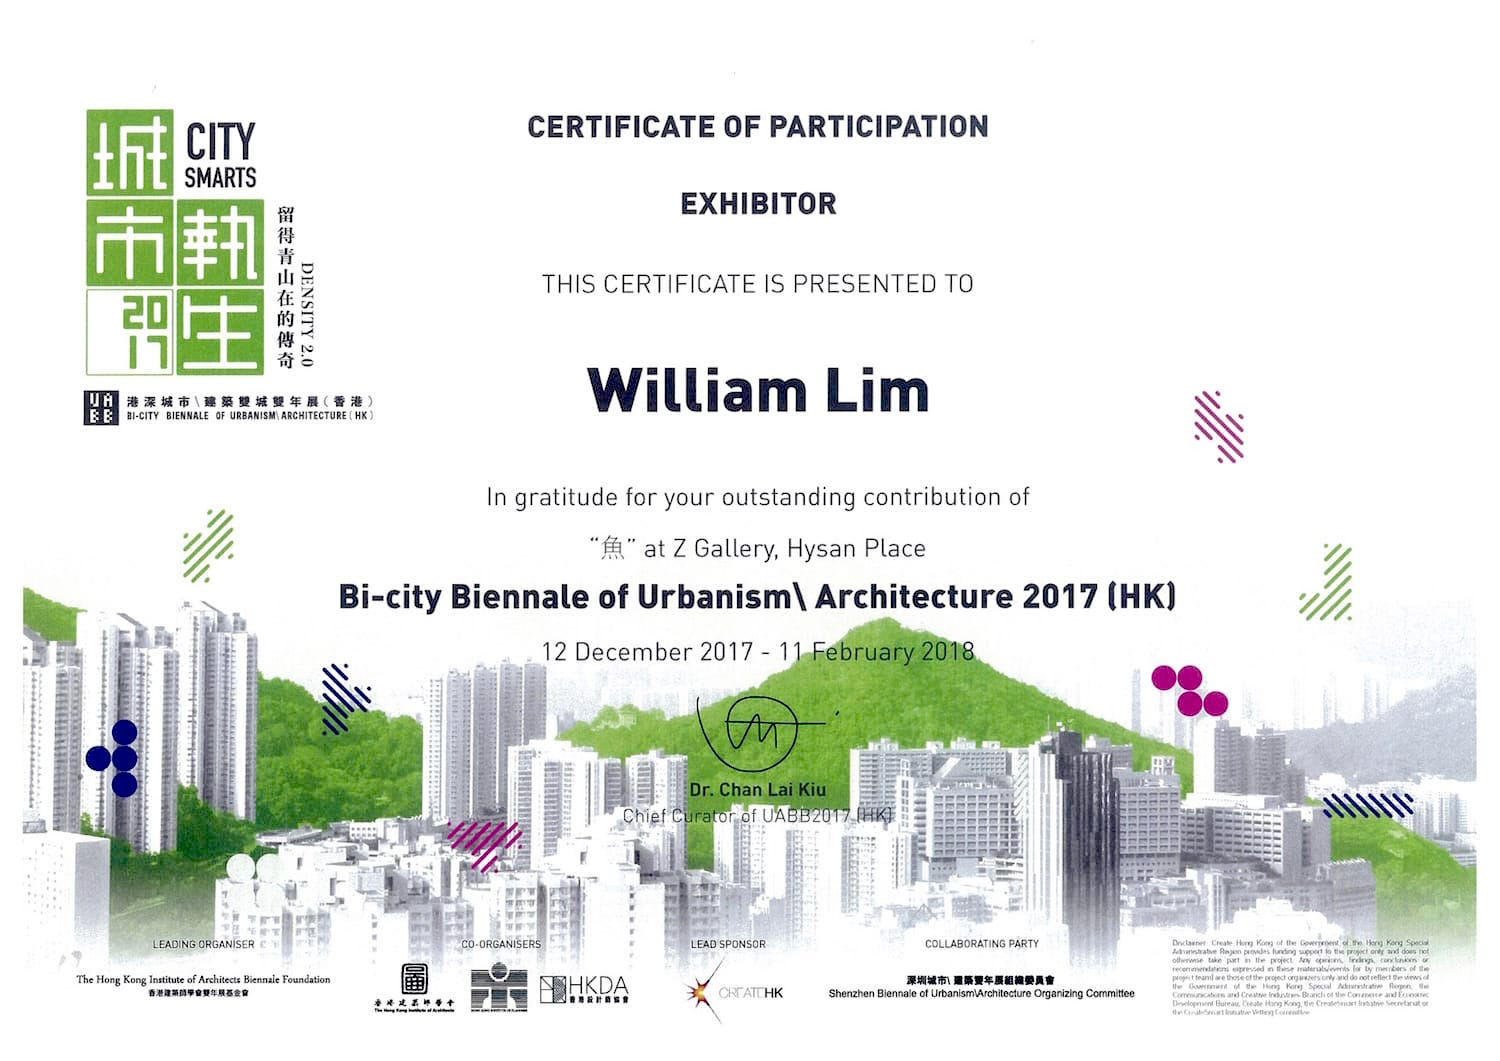 Bi-city Biennale of Urbanism Architecture 2017 (HK)_Fish William Lim